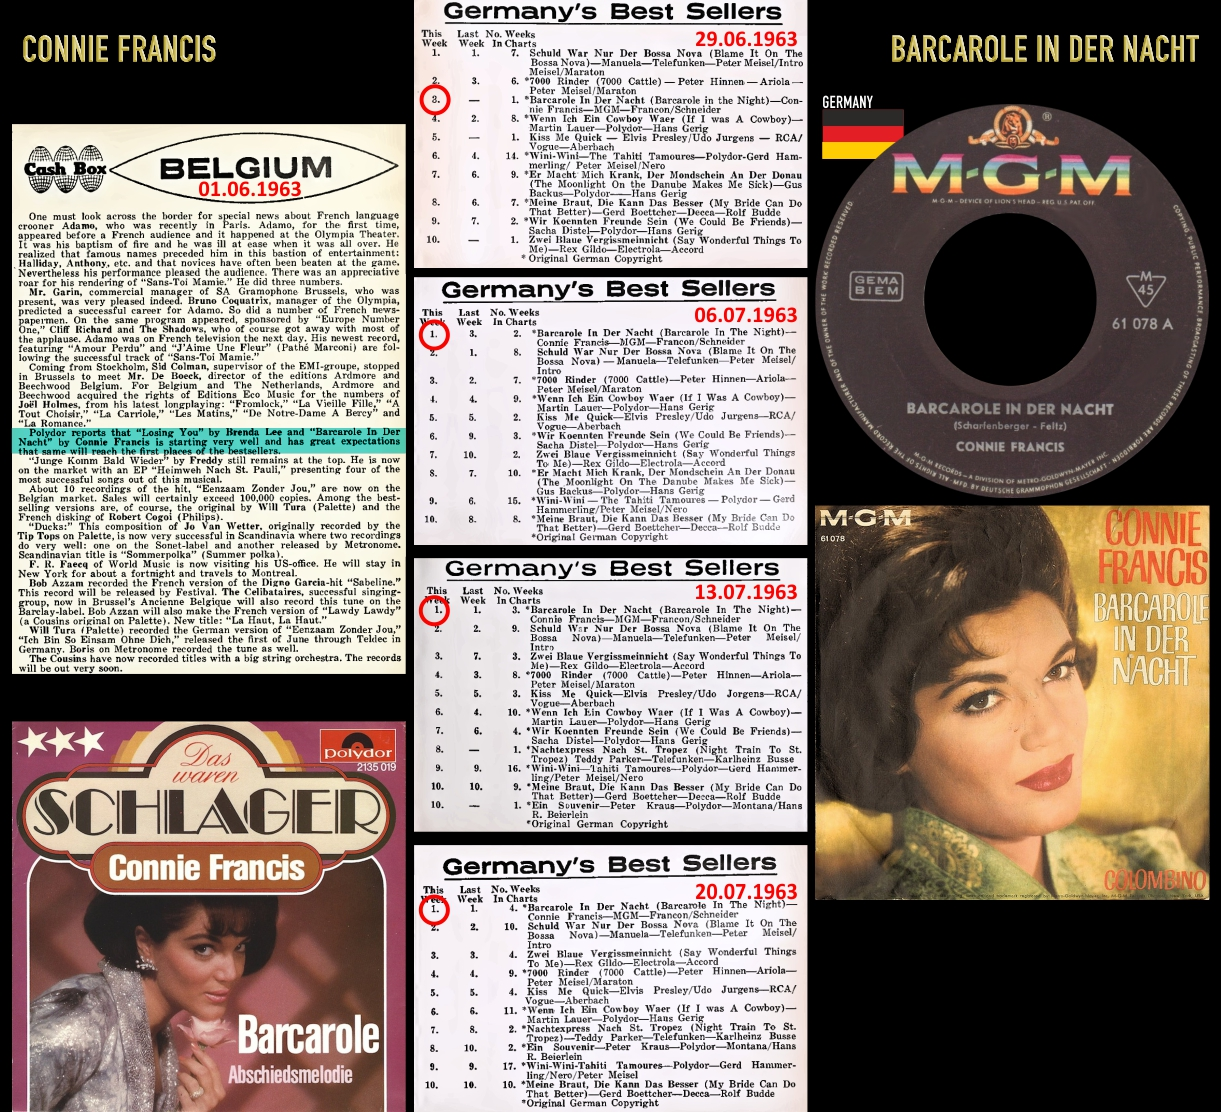 630511_Connie Francis_Barcarole in der Nacht